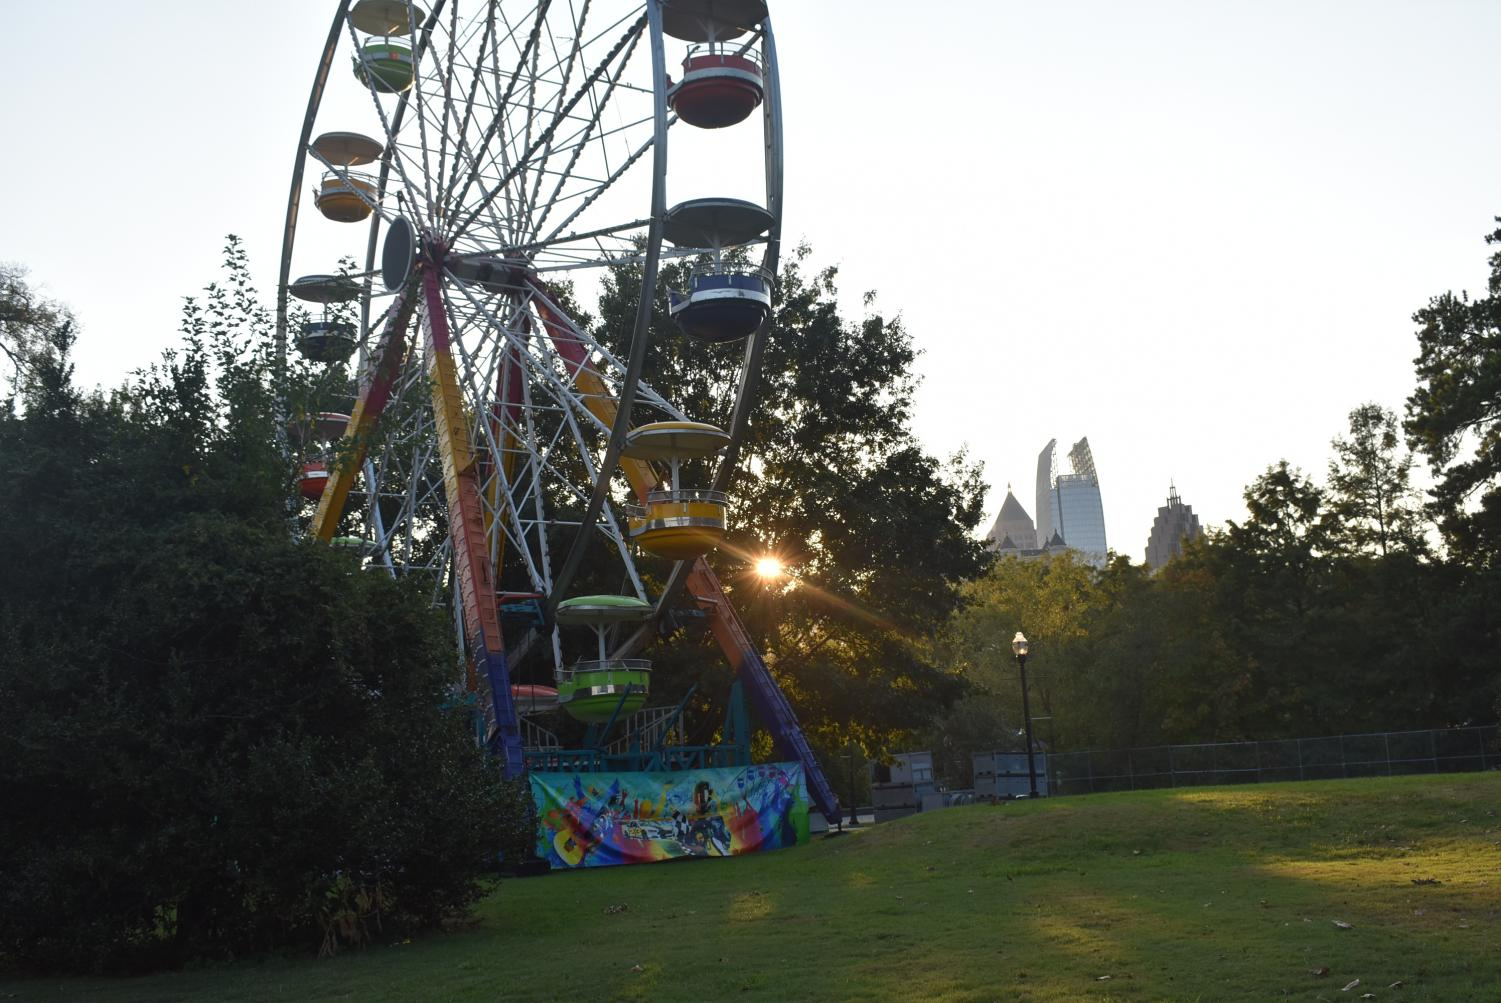 Pictured+is+the+Music+Midtown+carousel%2C+which+will+soon+be+surrounded+by+many+tents+for+vendors.